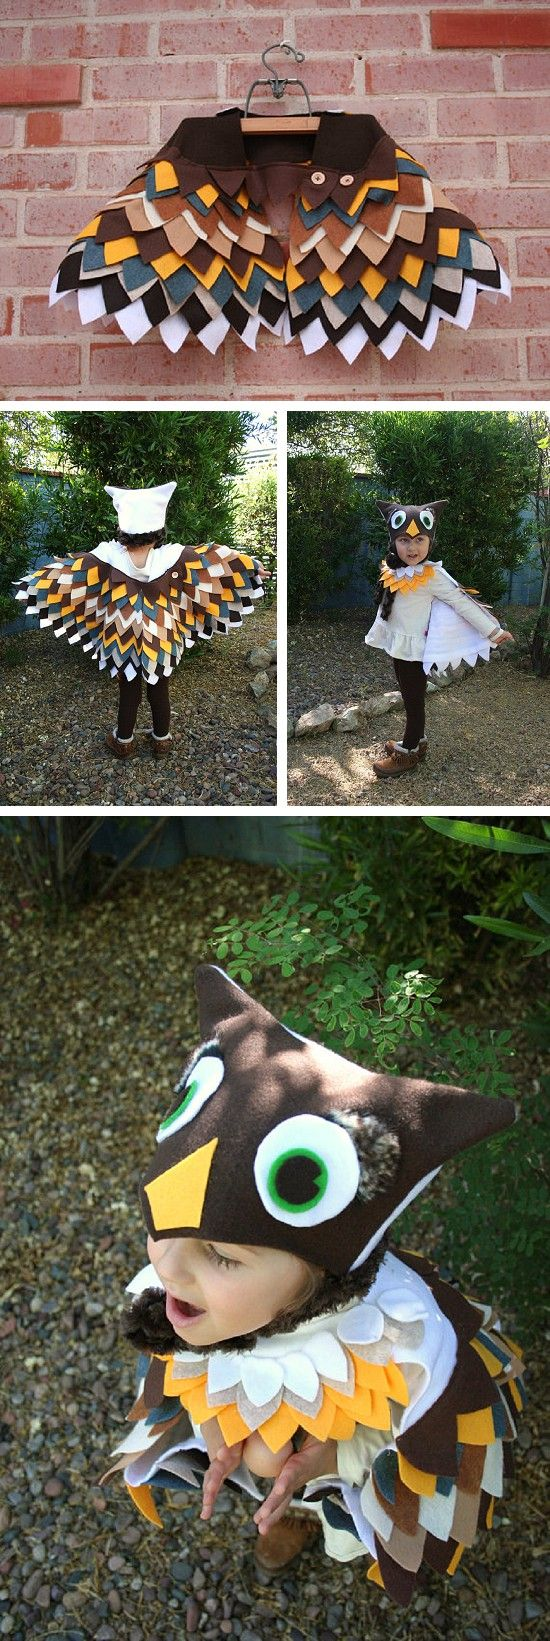 Adorable Owl Costume http://sulia.com/my_thoughts/7d373e3e-439a-4a0b-8426-3f86283fd12a/?source=pin&action=share&ux=mono&btn=big&form_factor=desktop&sharer_id=0&is_sharer_author=false